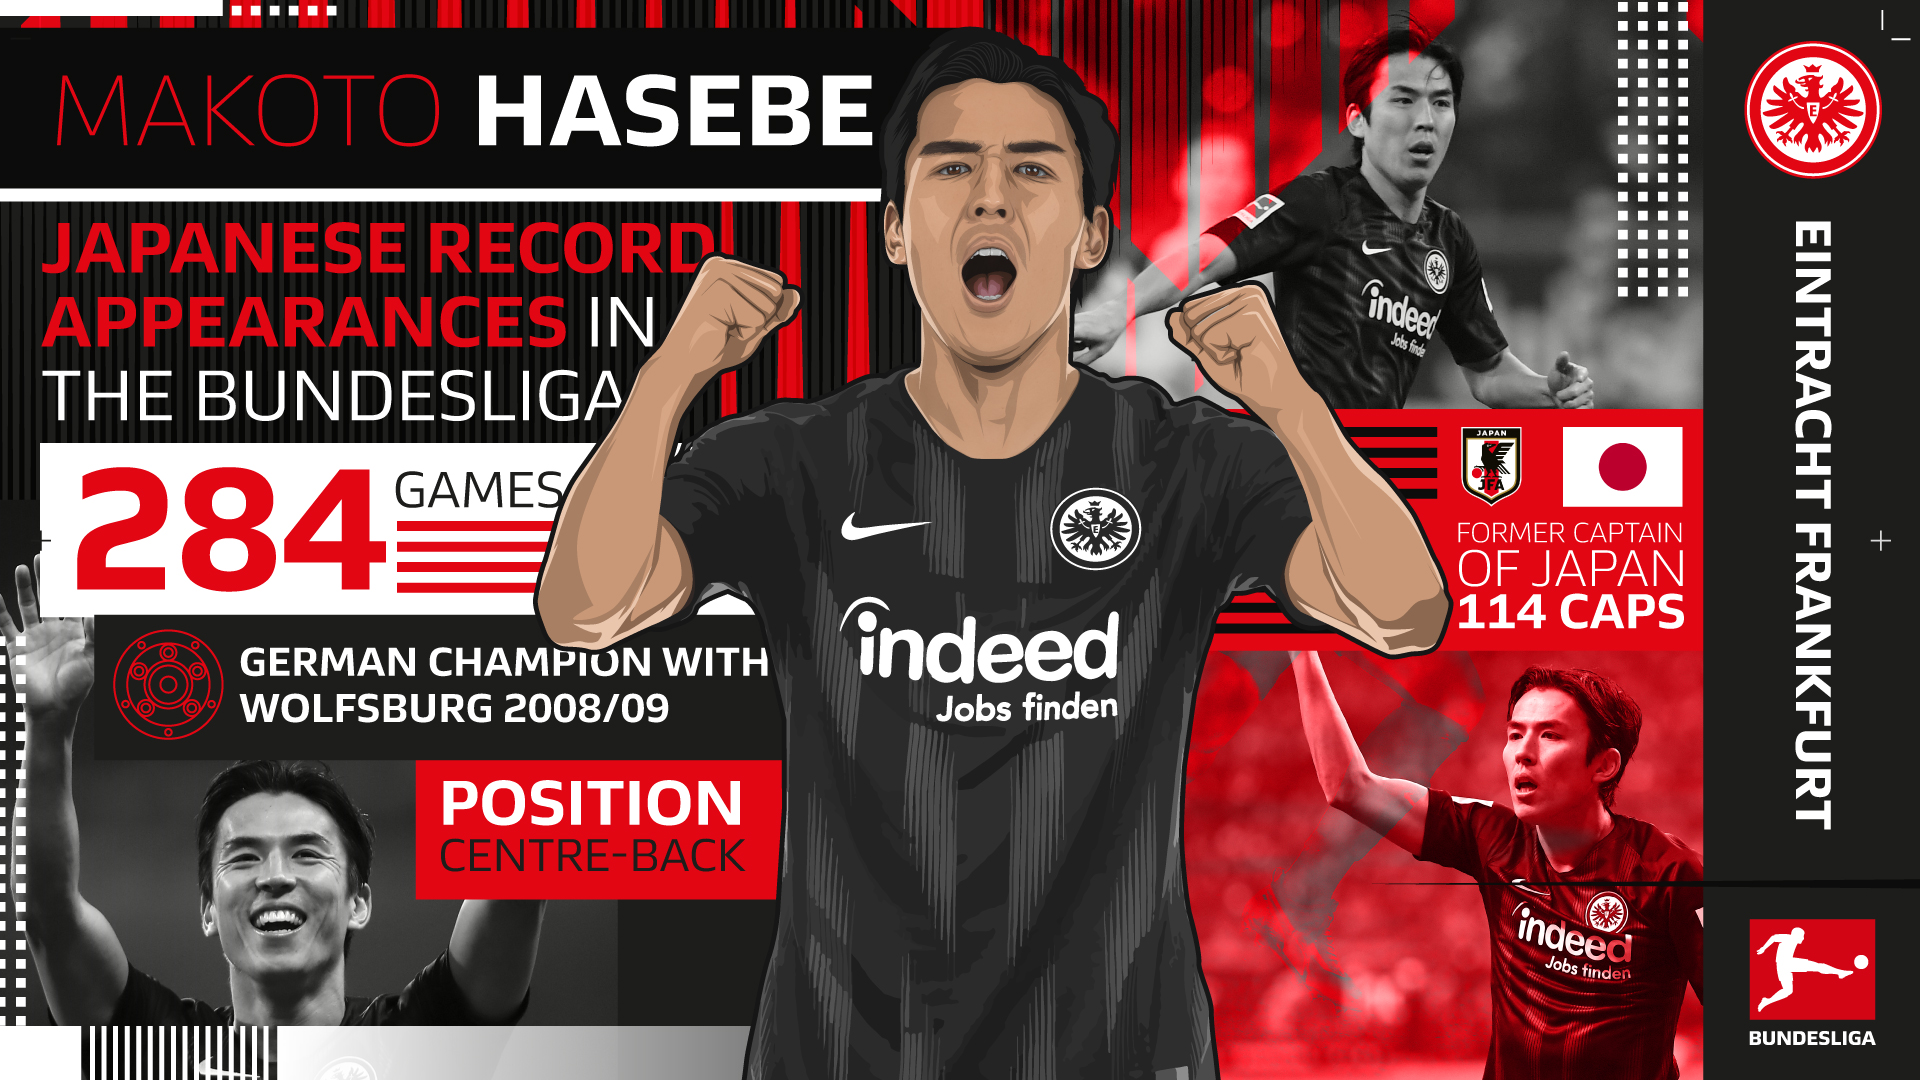 Hasebe-stats-1920x1080